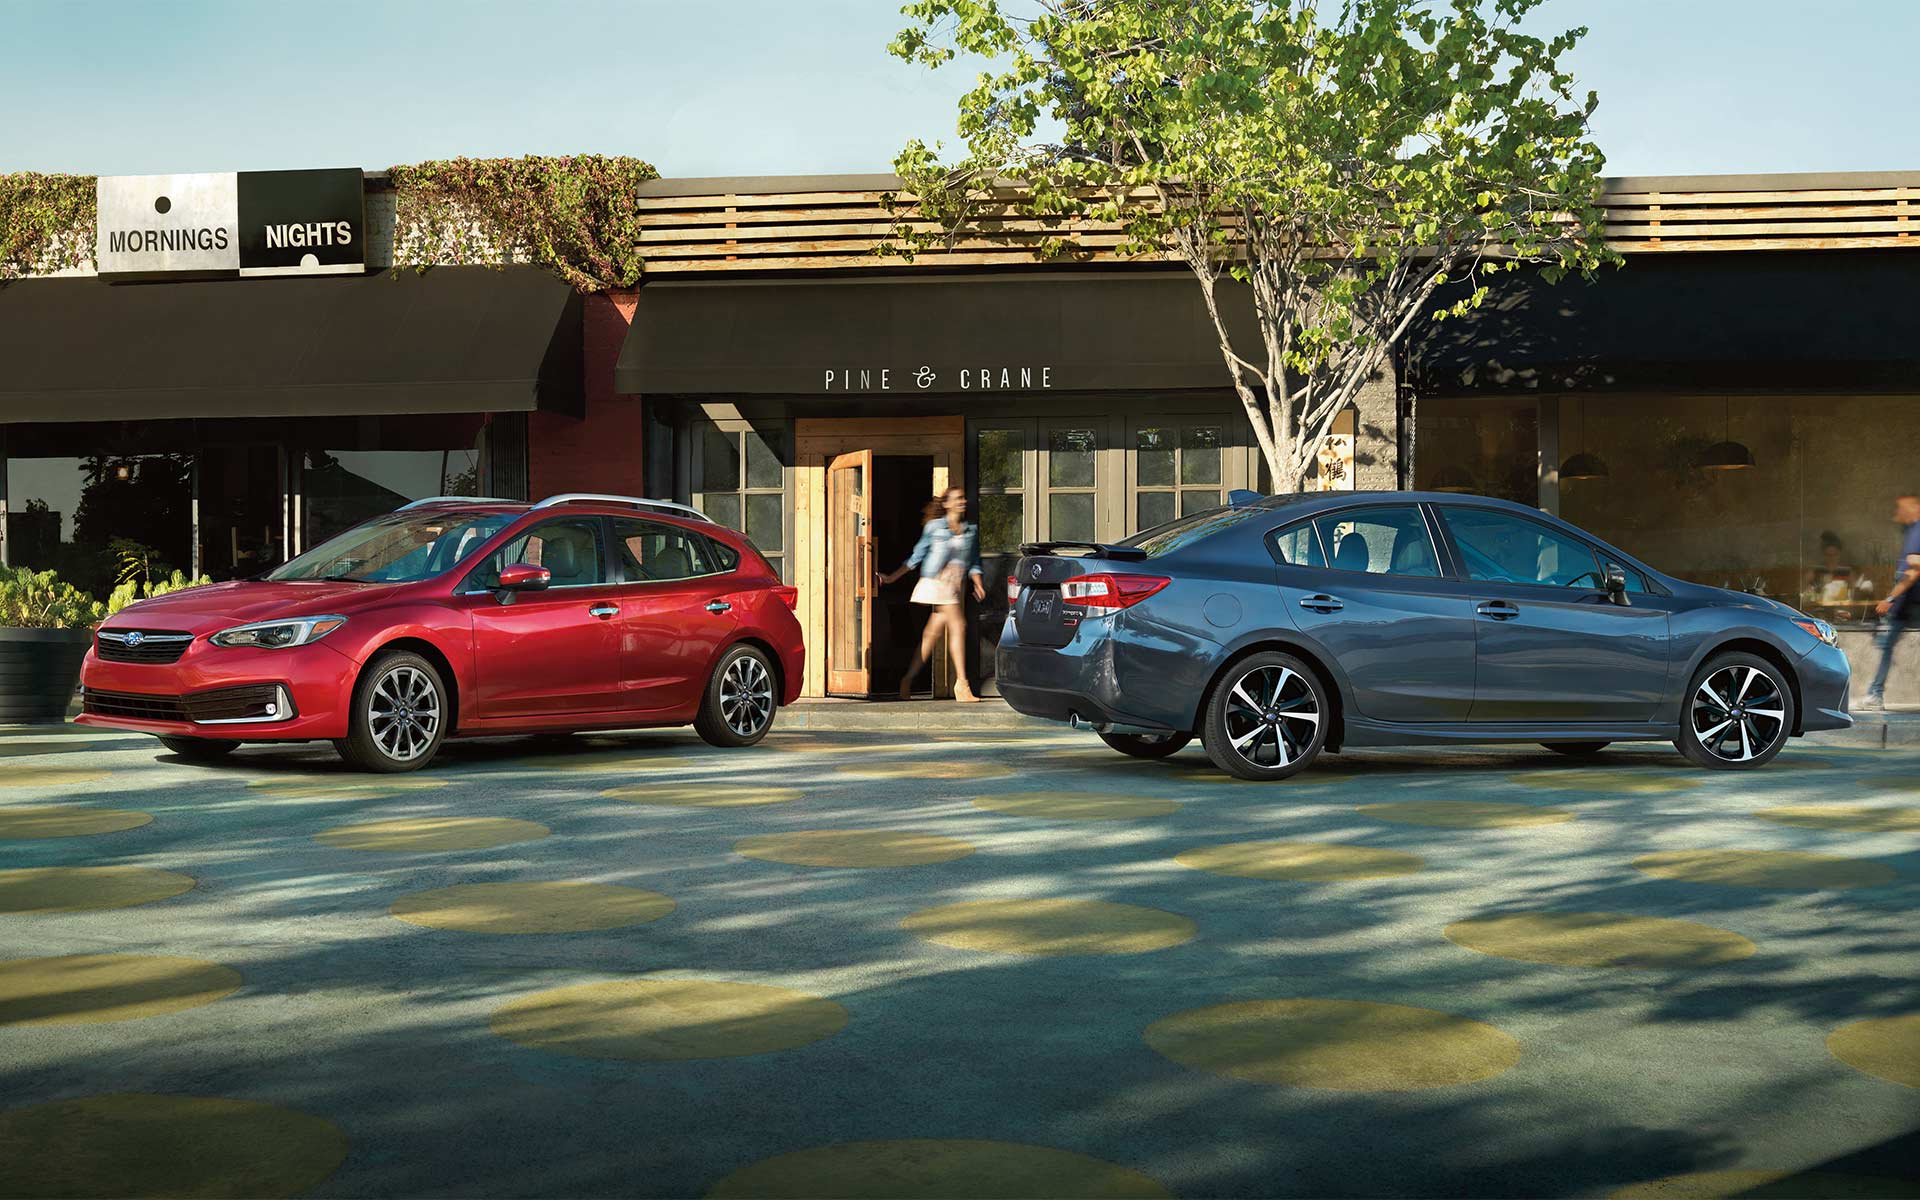 A photo of a 2020 Impreza 5-door and sedan parked outside of a restaurant.